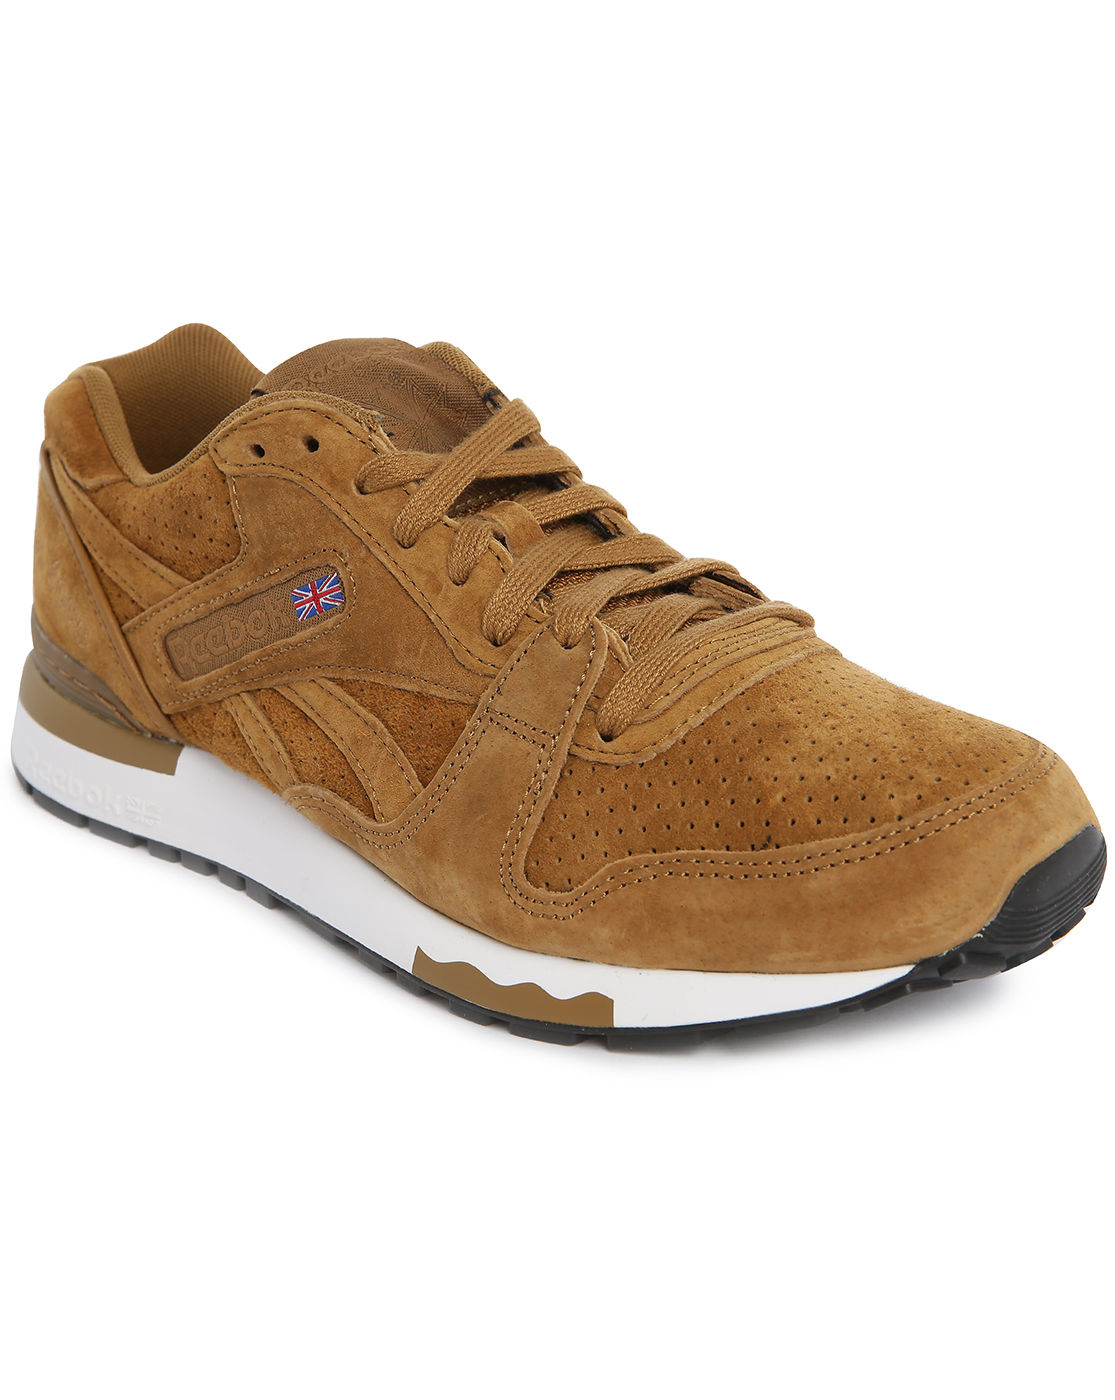 reebok gl 6000 tobacco suede sneakers in brown for men tobacco lyst. Black Bedroom Furniture Sets. Home Design Ideas